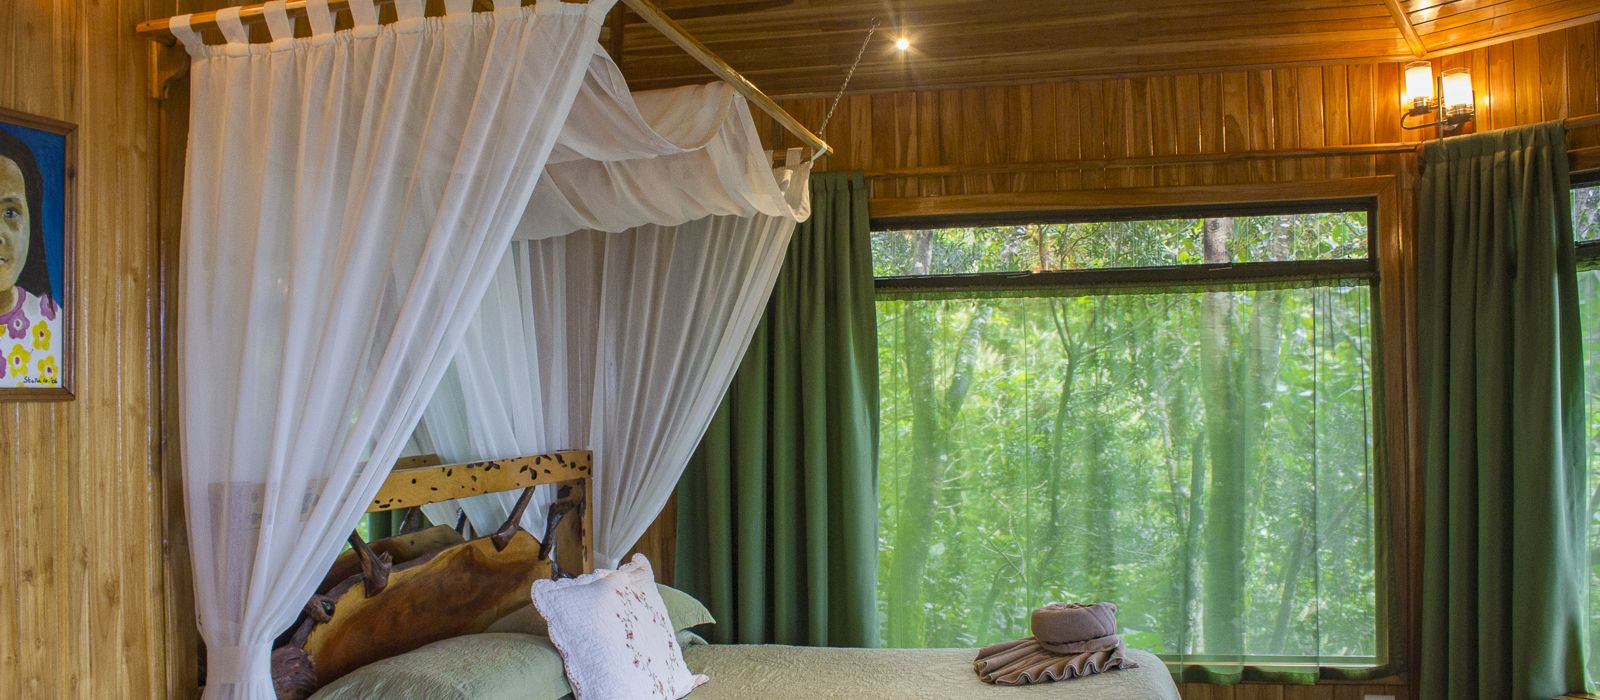 Hotel Hidden Canopy Treehouse Costa Rica